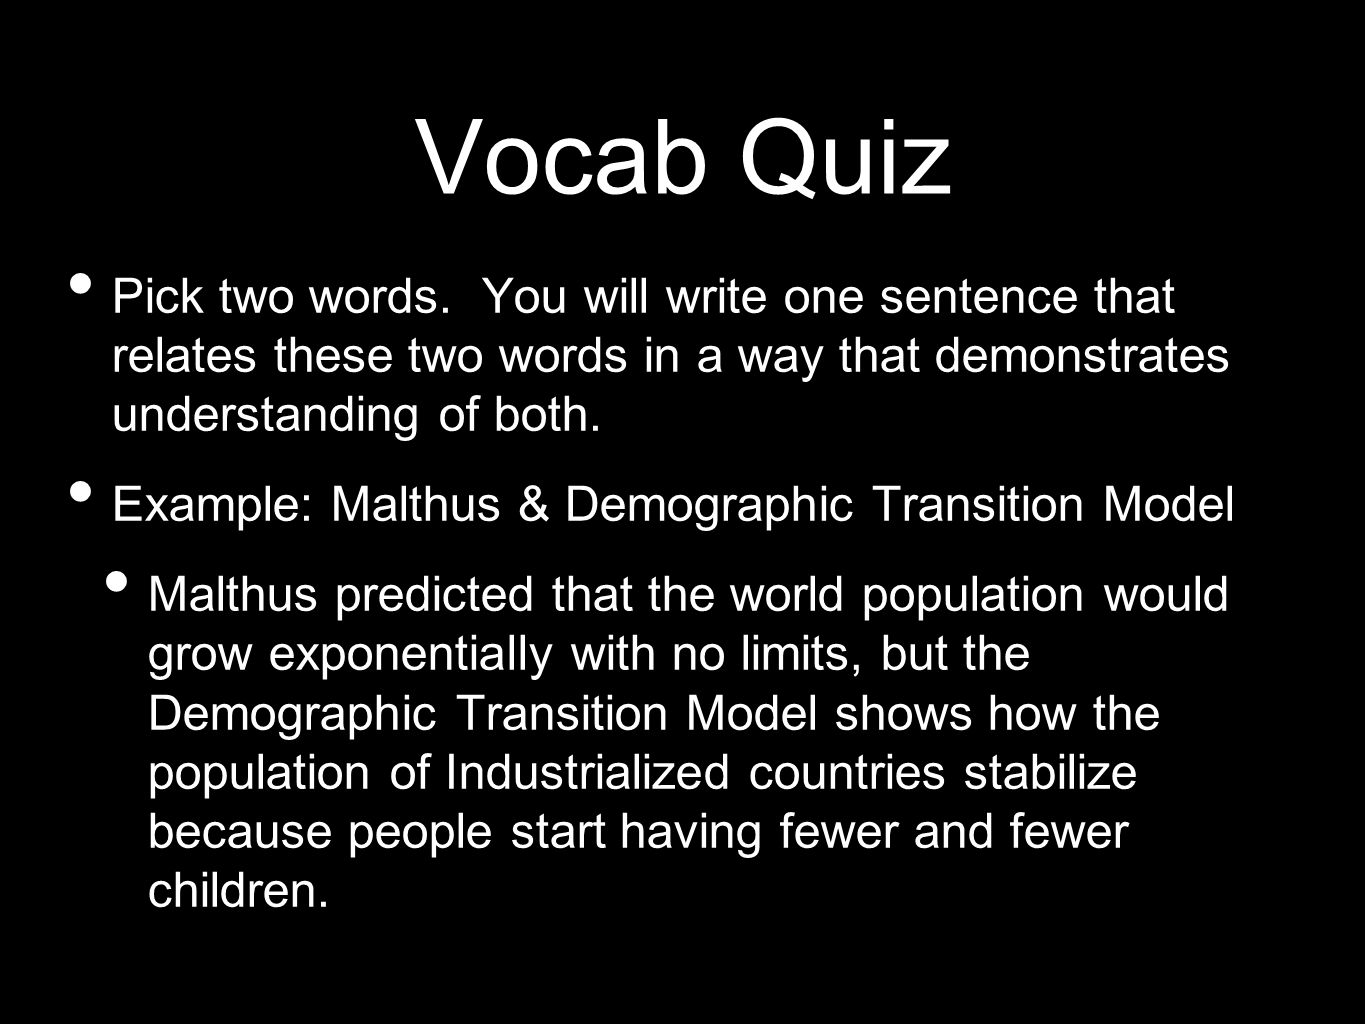 Vocab Quiz Pick two words. You will write one sentence that relates these two words in a way that demonstrates understanding of both.